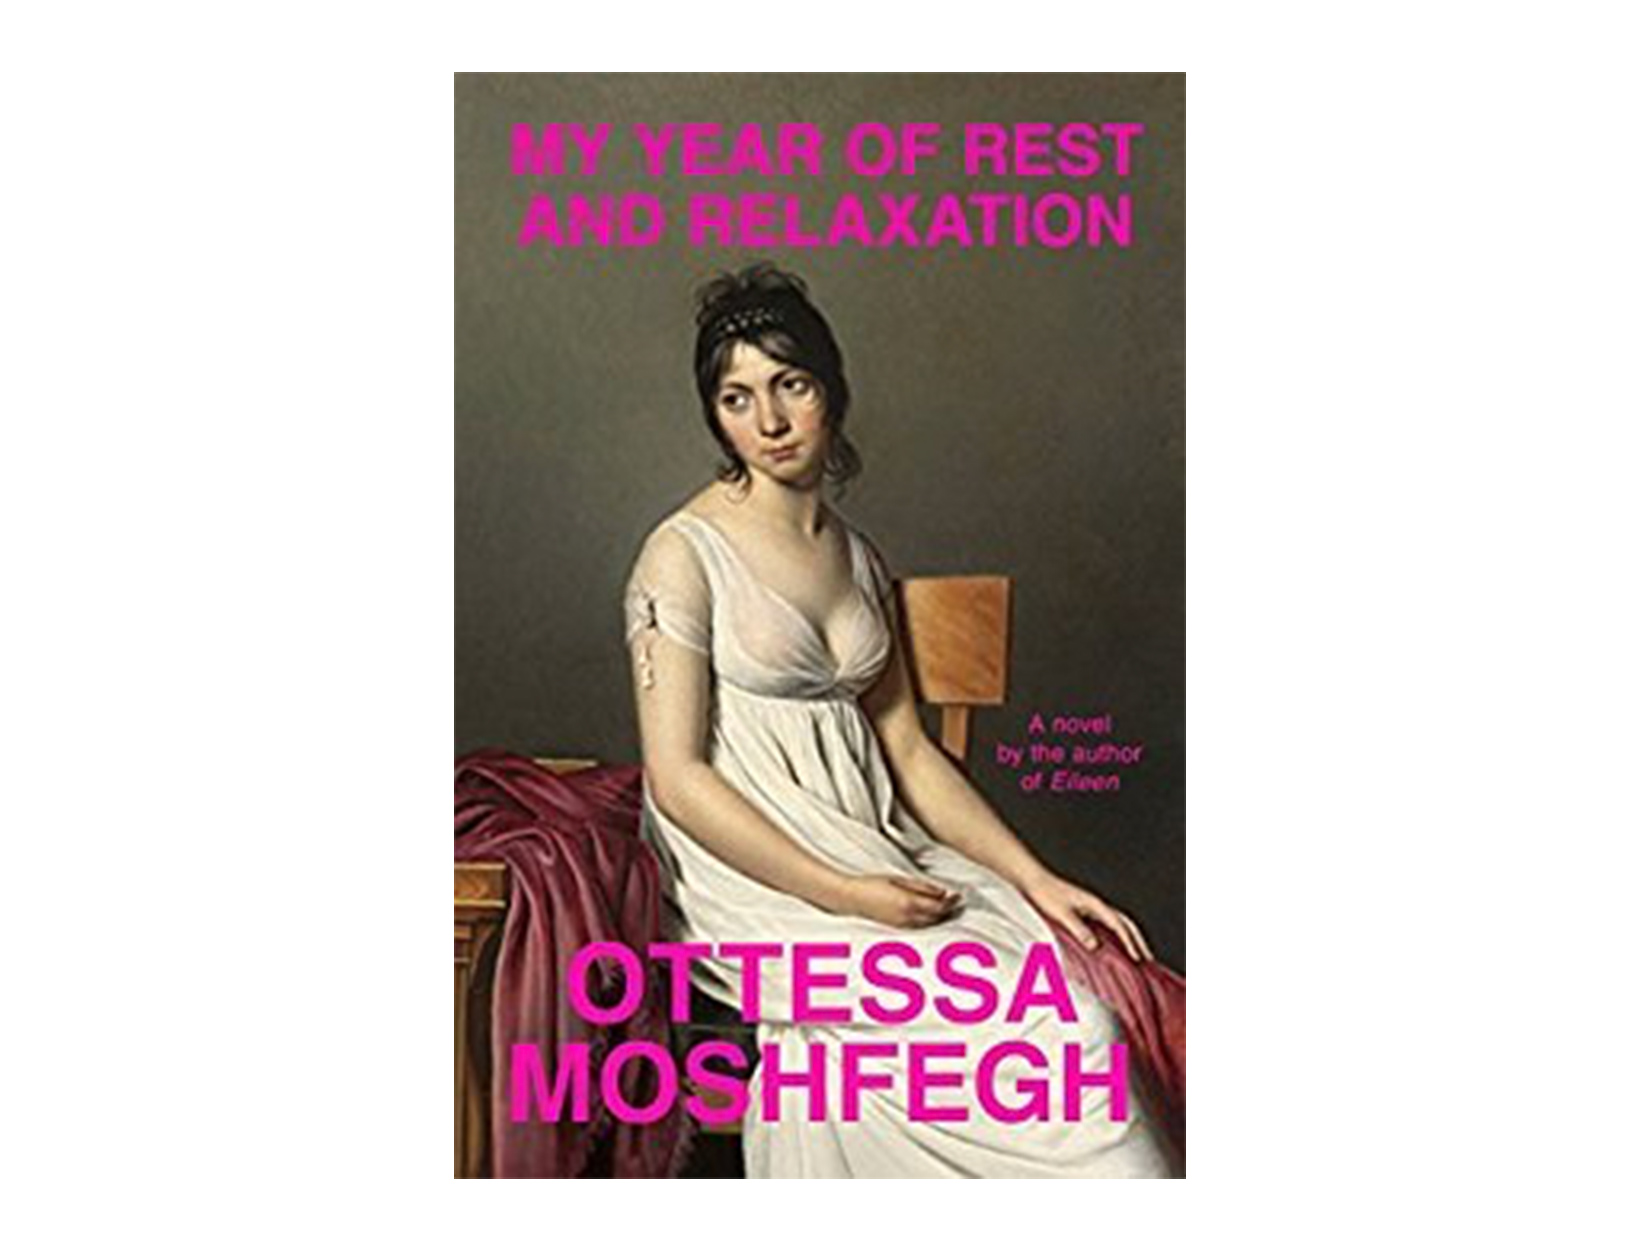 <em>My Year of Rest and Relaxation</em> by Ottessa Moshfegh